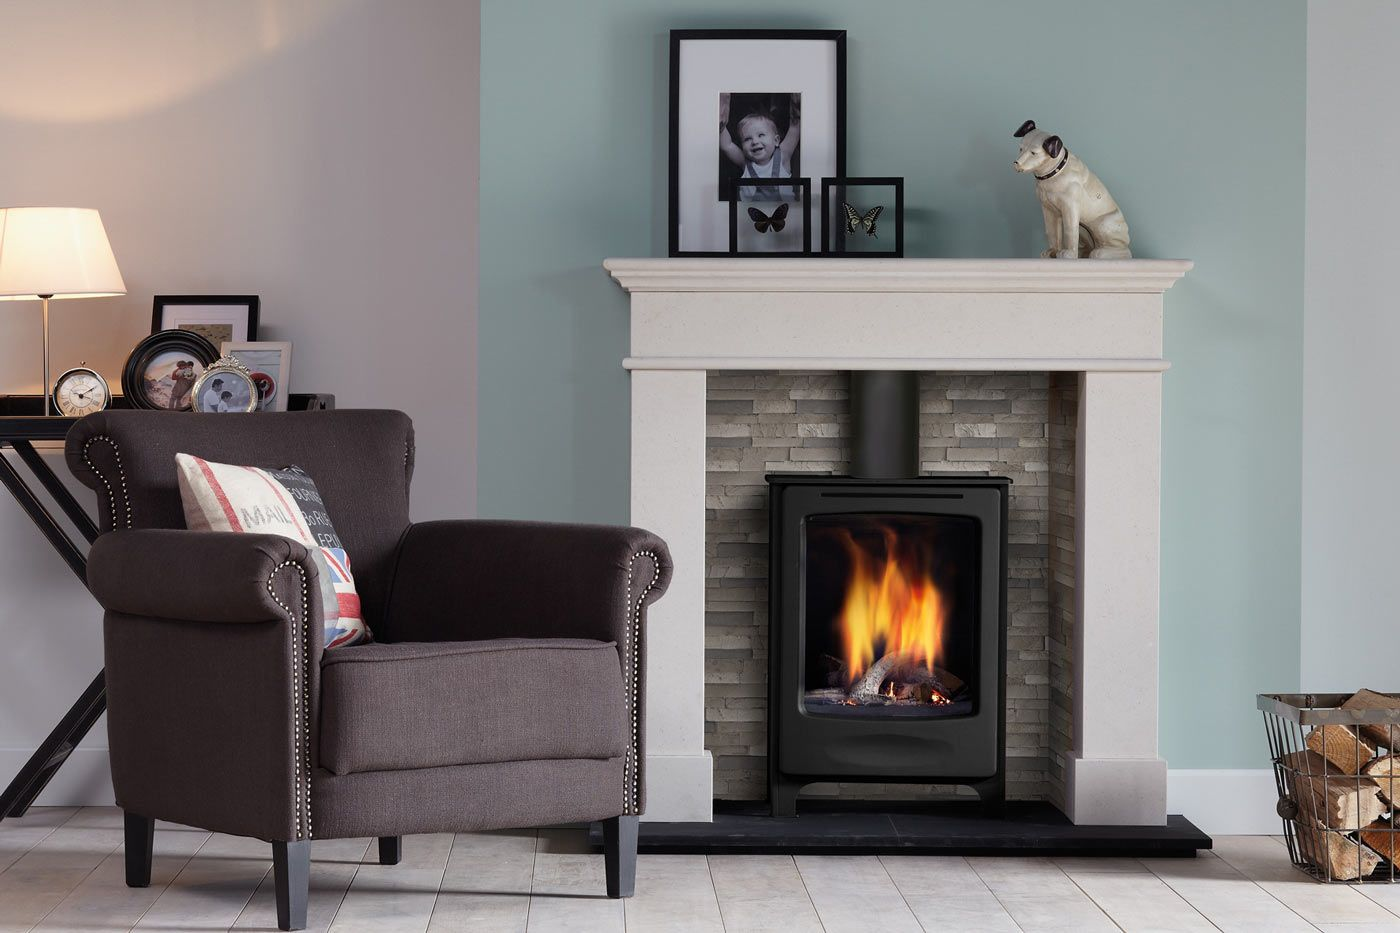 global beau is a classic freestanding gas stove with a